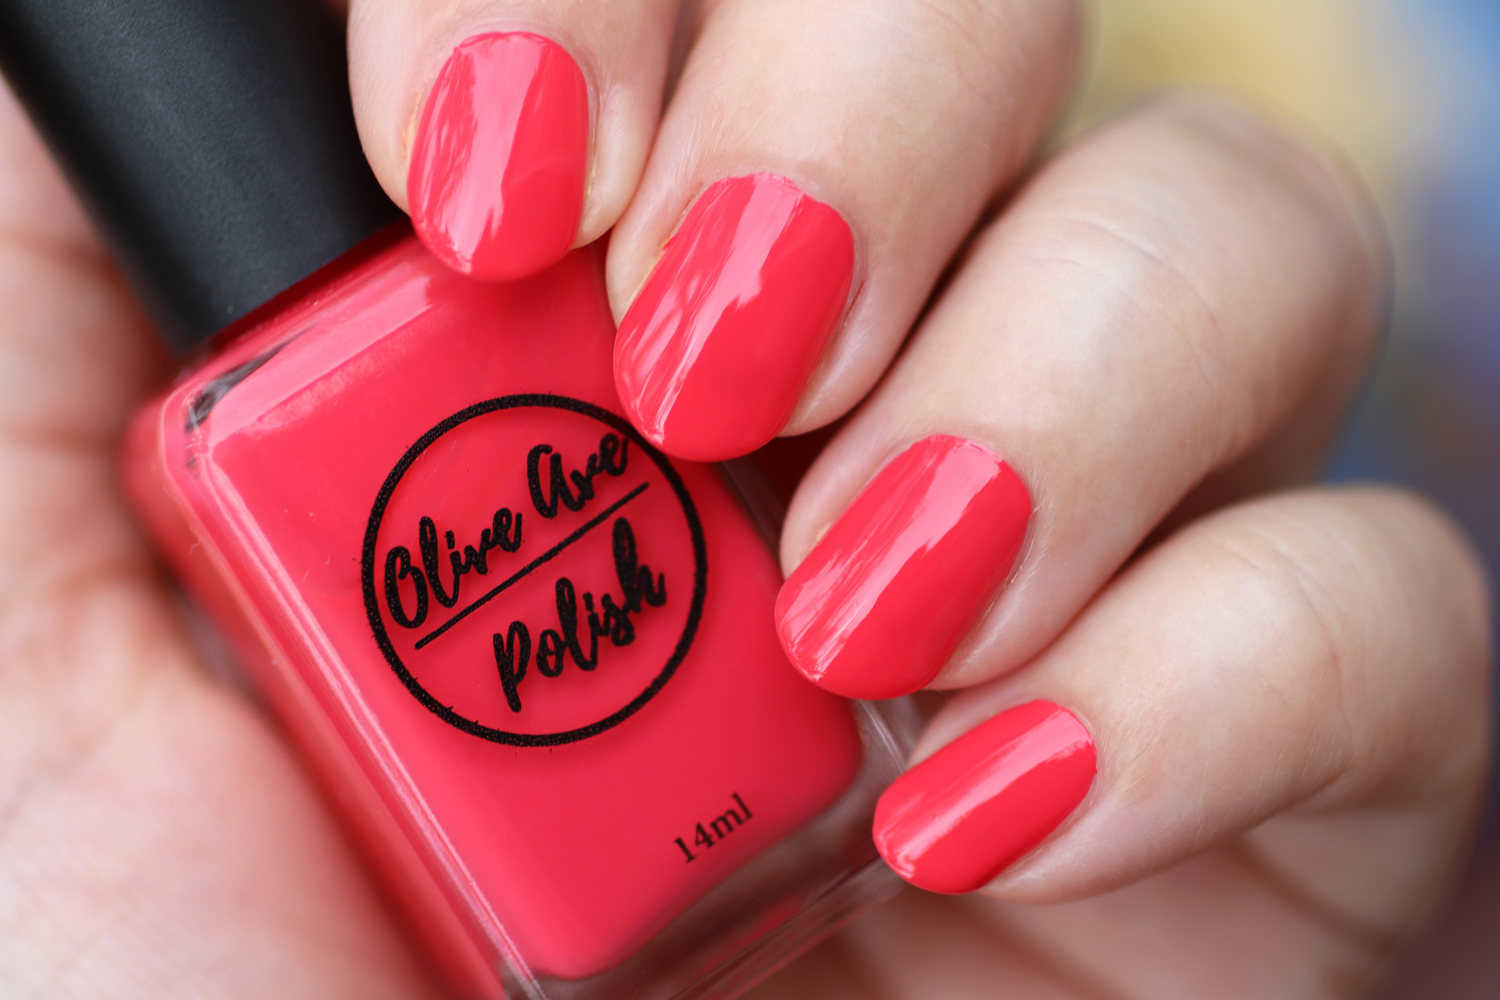 Strawberry coral pink nail polish by Olive Ave